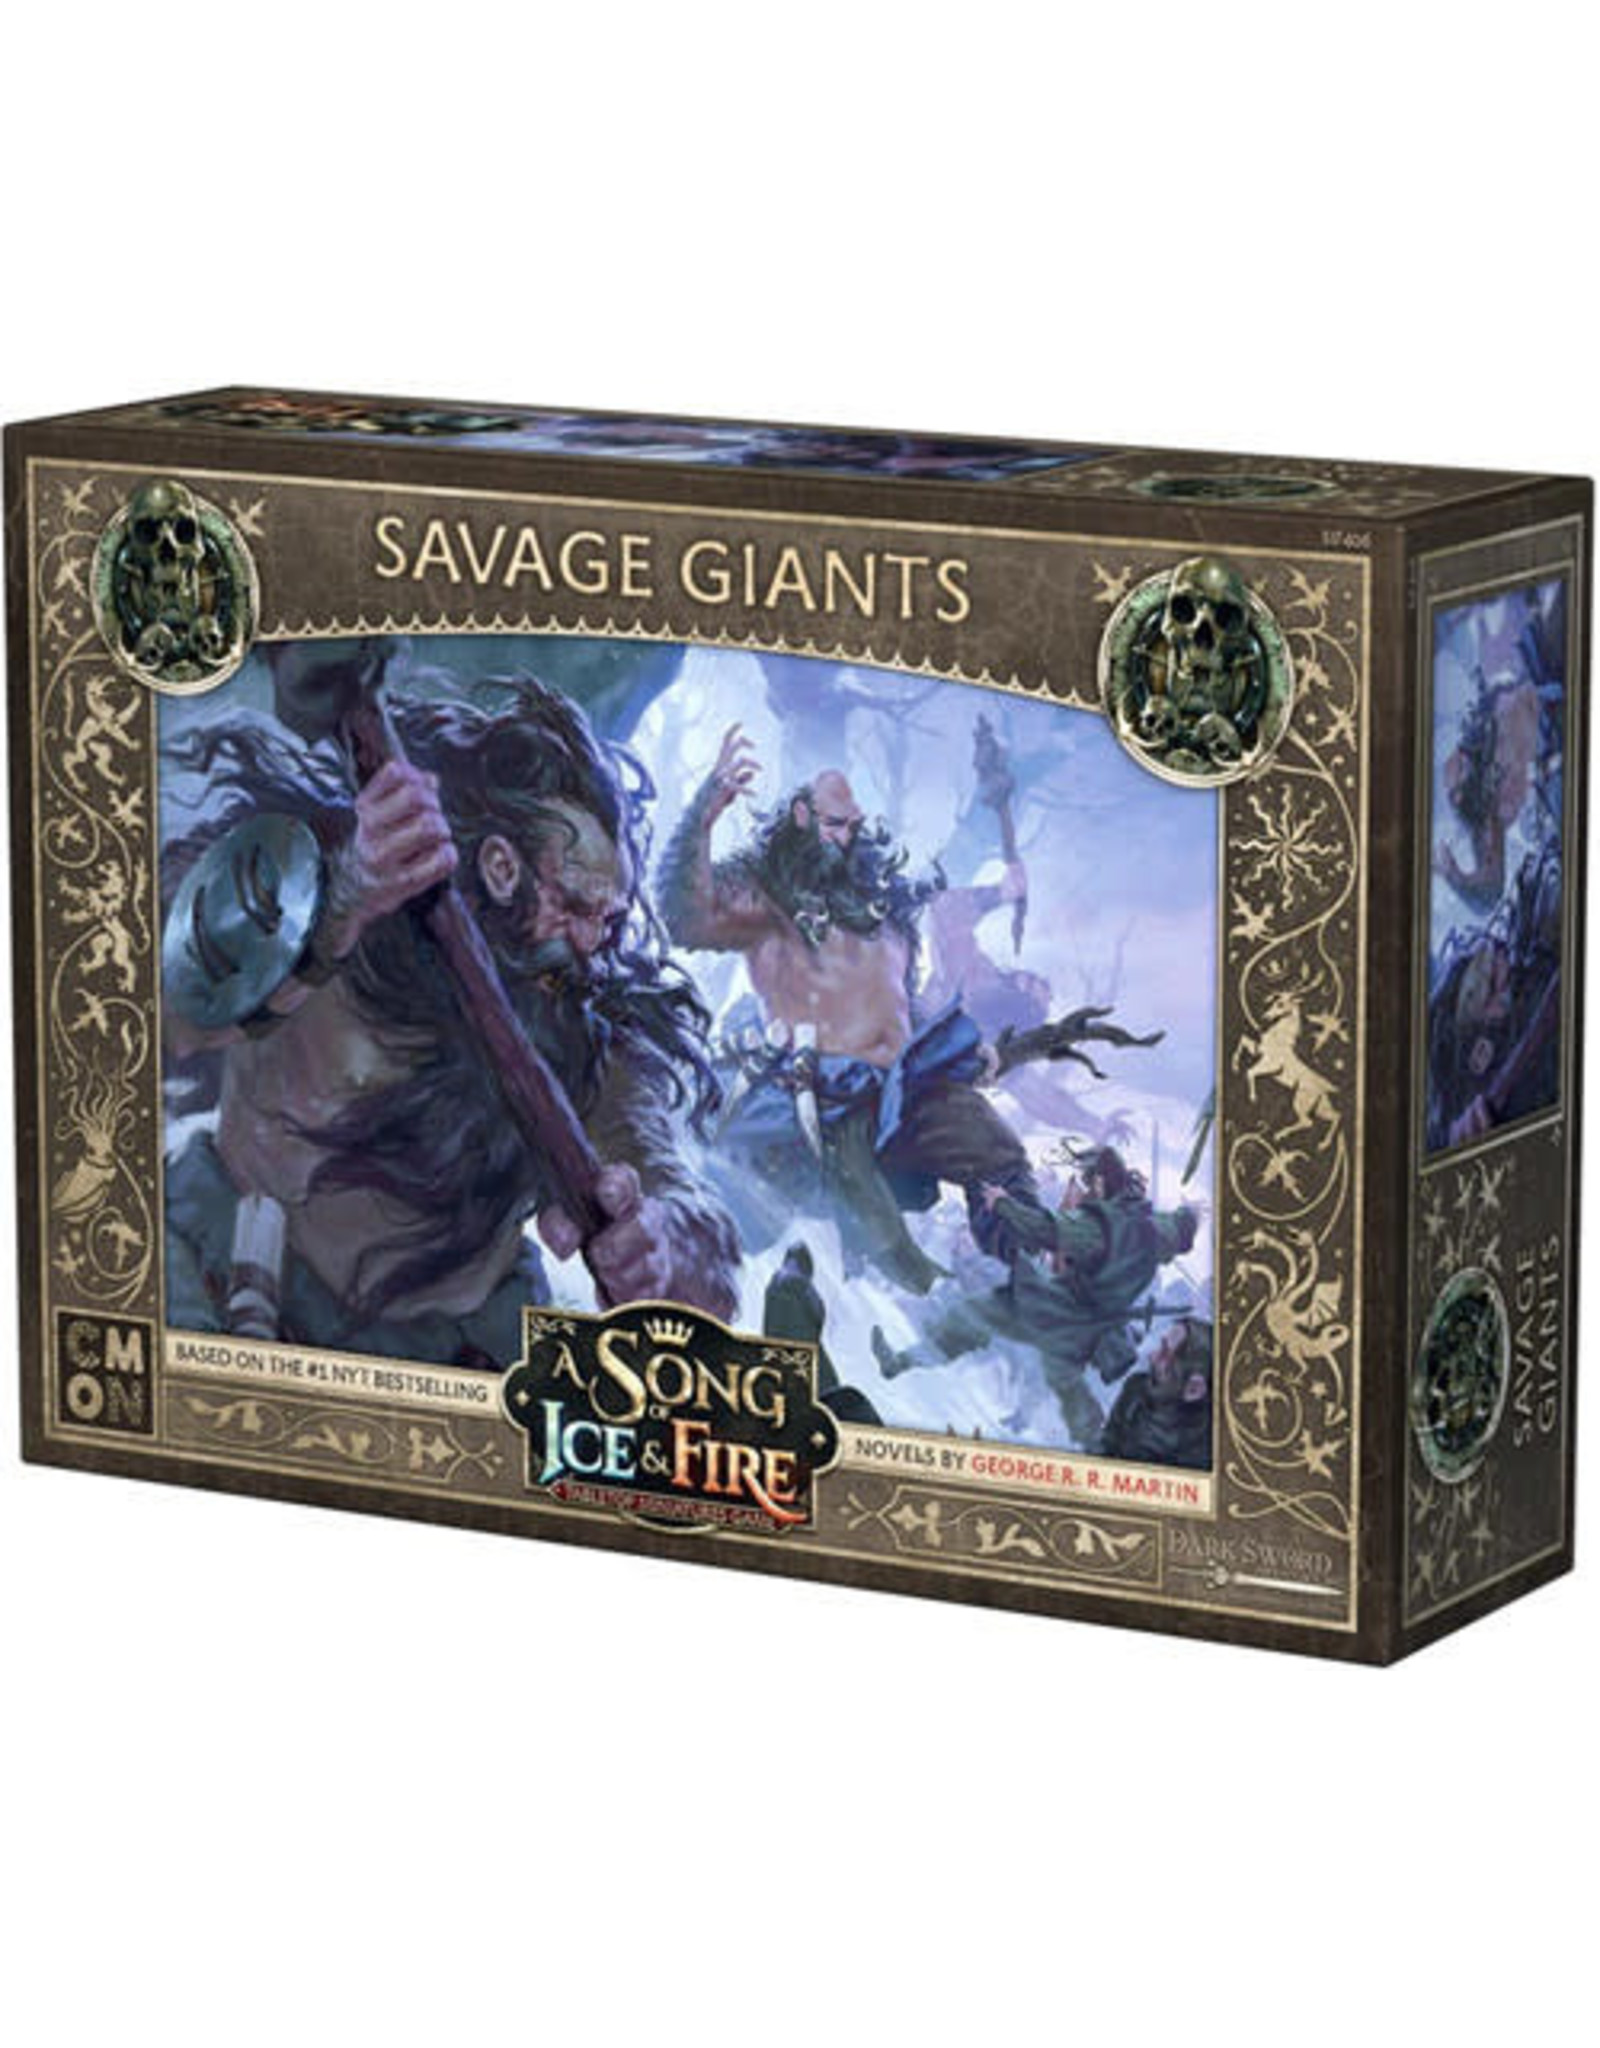 CMON A Song of Ice & Fire: Savage Giants